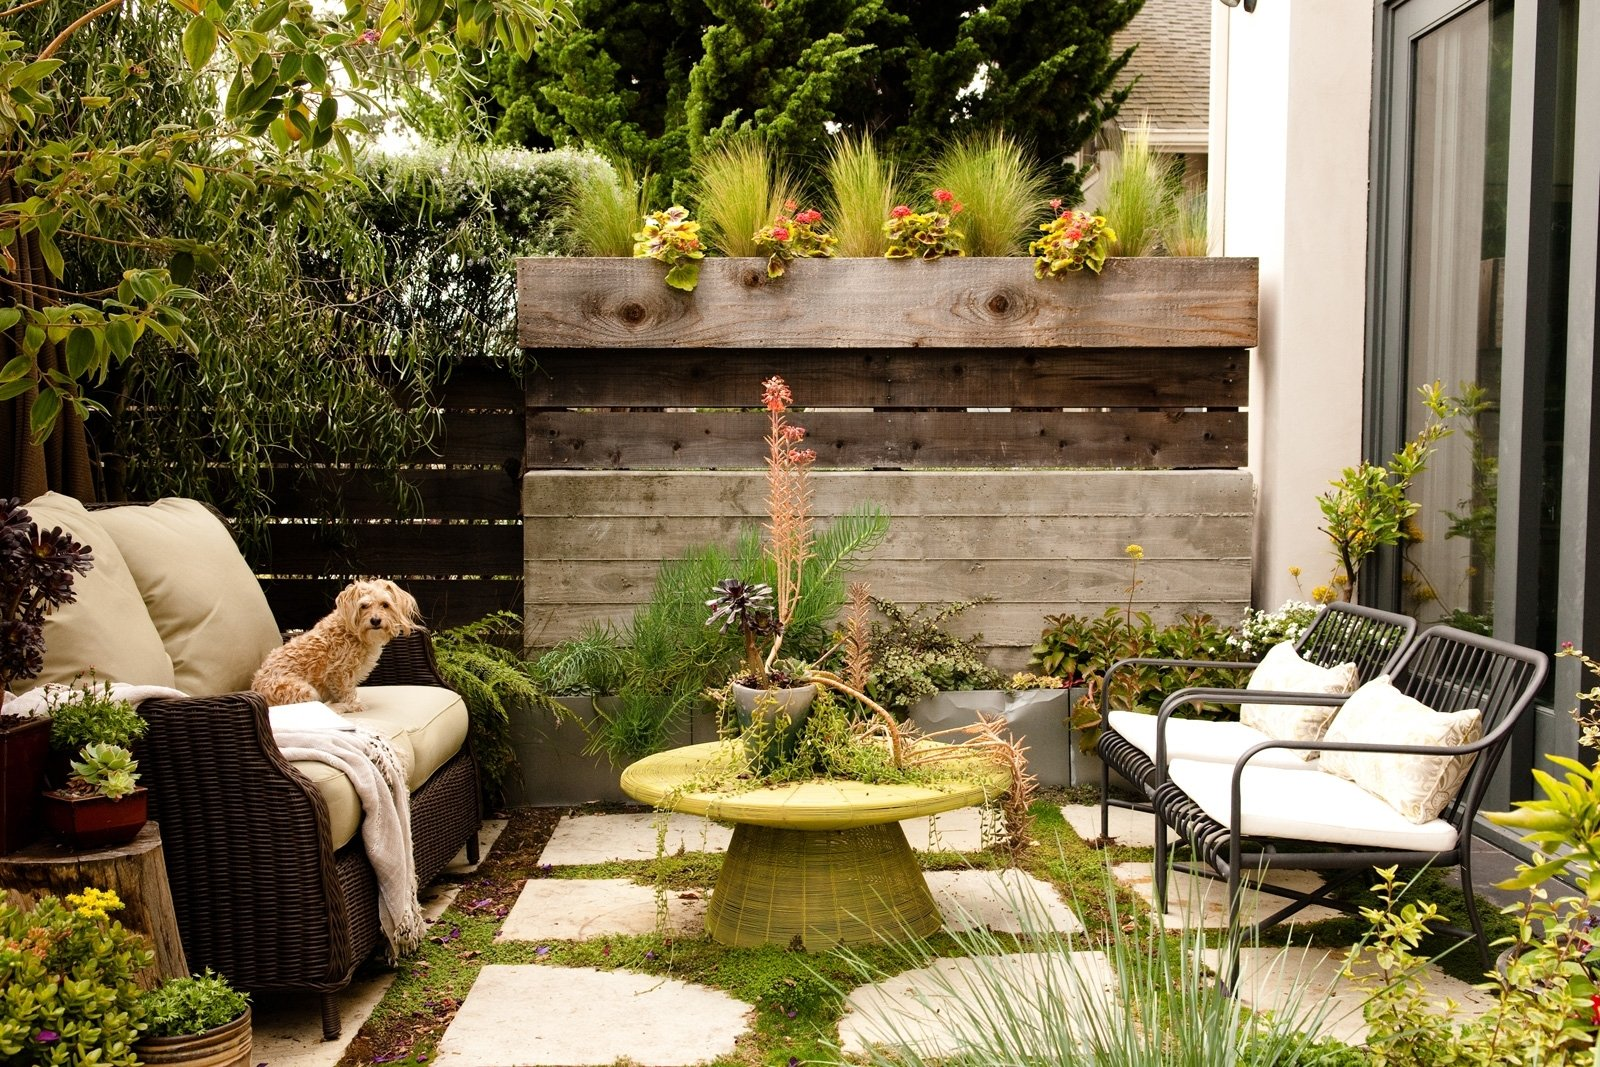 10 Perfect Outdoor Patio Ideas For Small Spaces small backyard ideas how to make a small space look bigger 2020